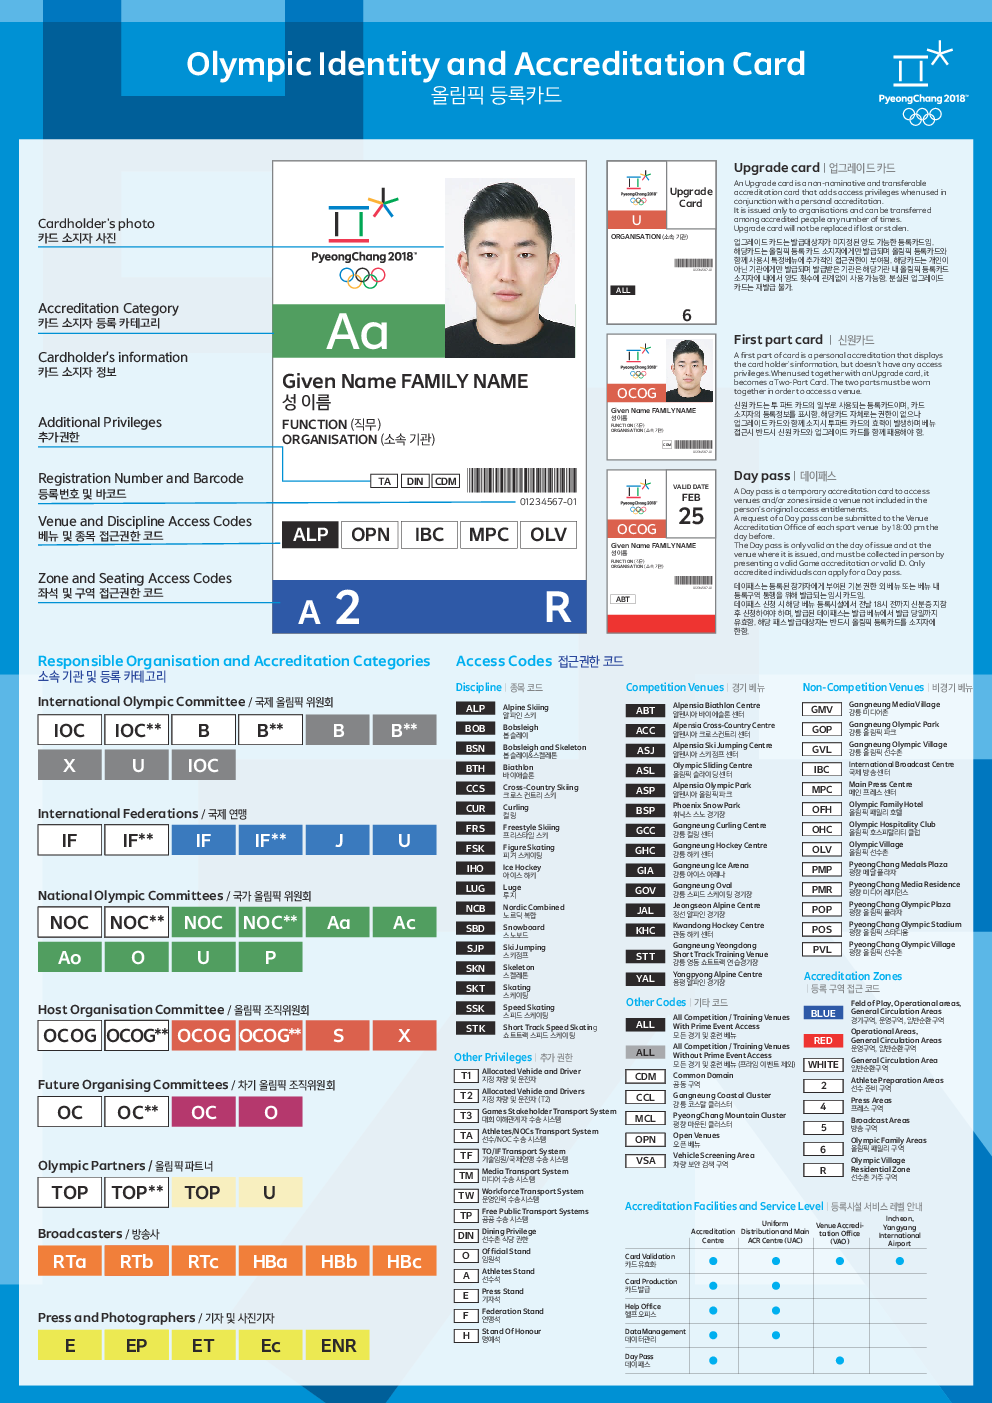 Olympic identity and accreditation card